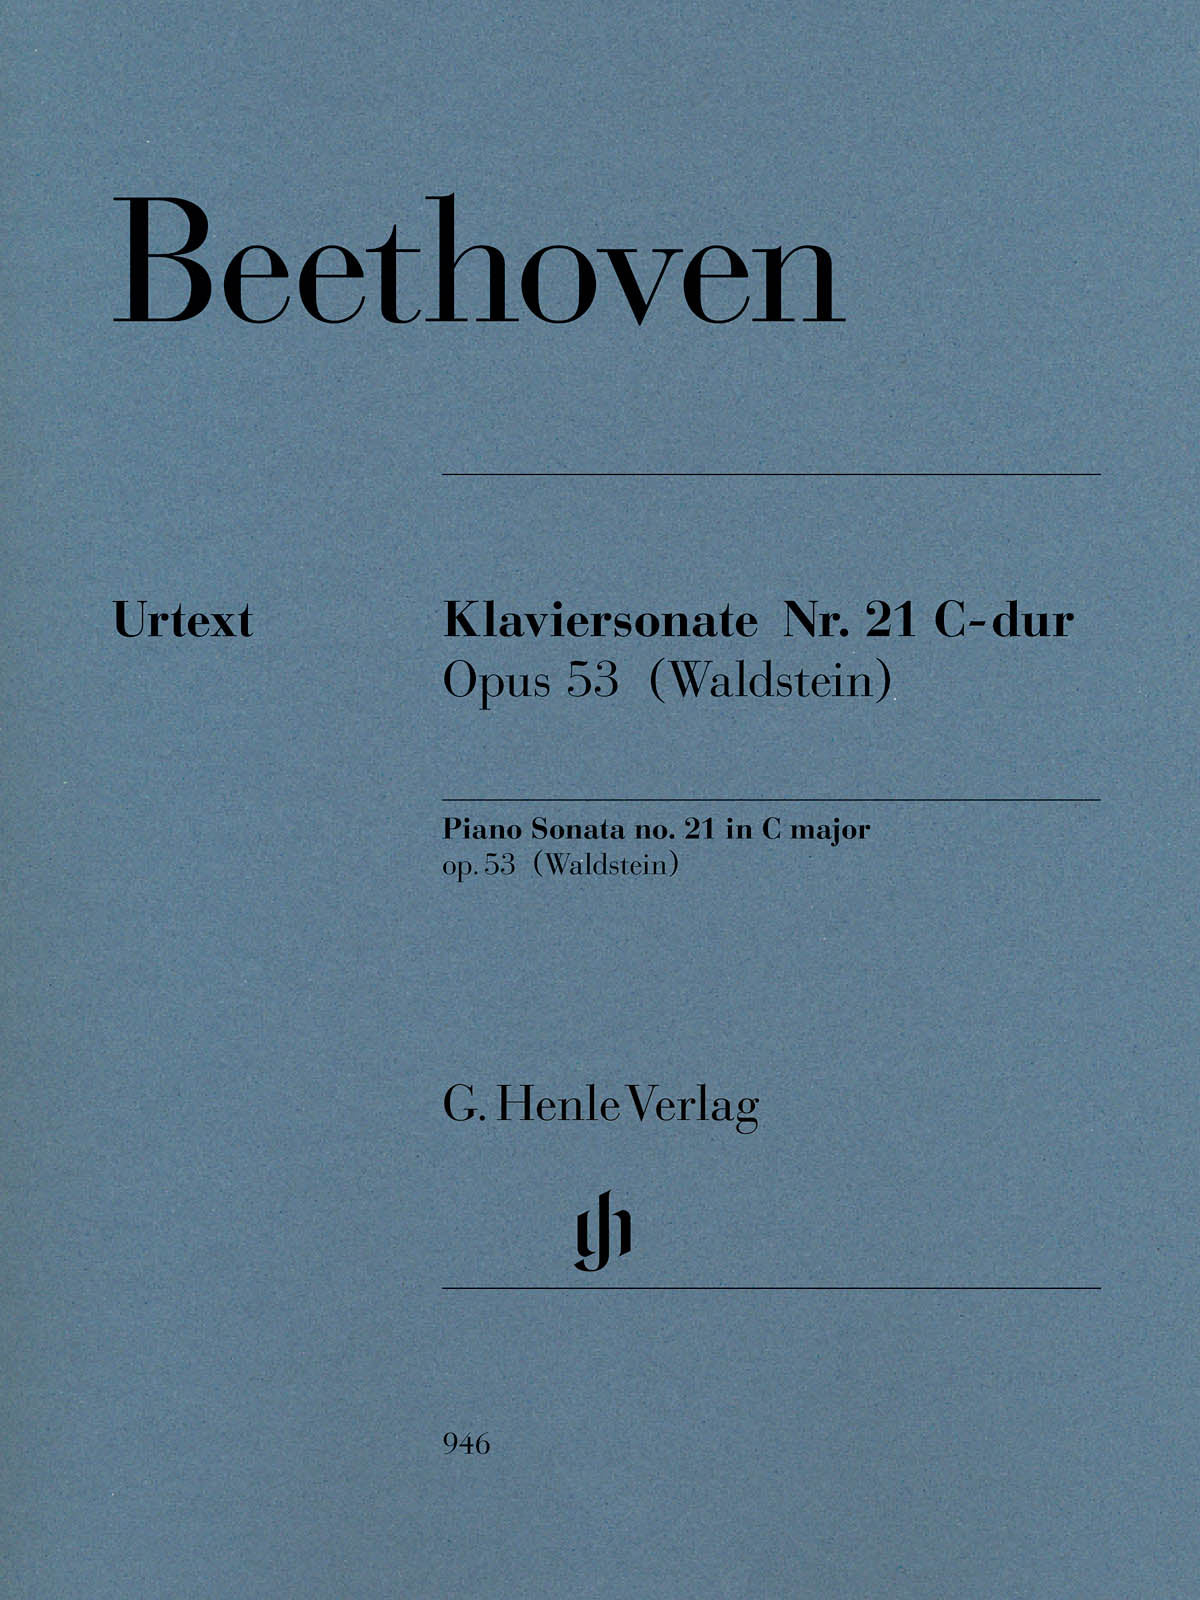 Beethoven: Piano Sonata No. 21 in C Major, Op. 53 (Waldstein)